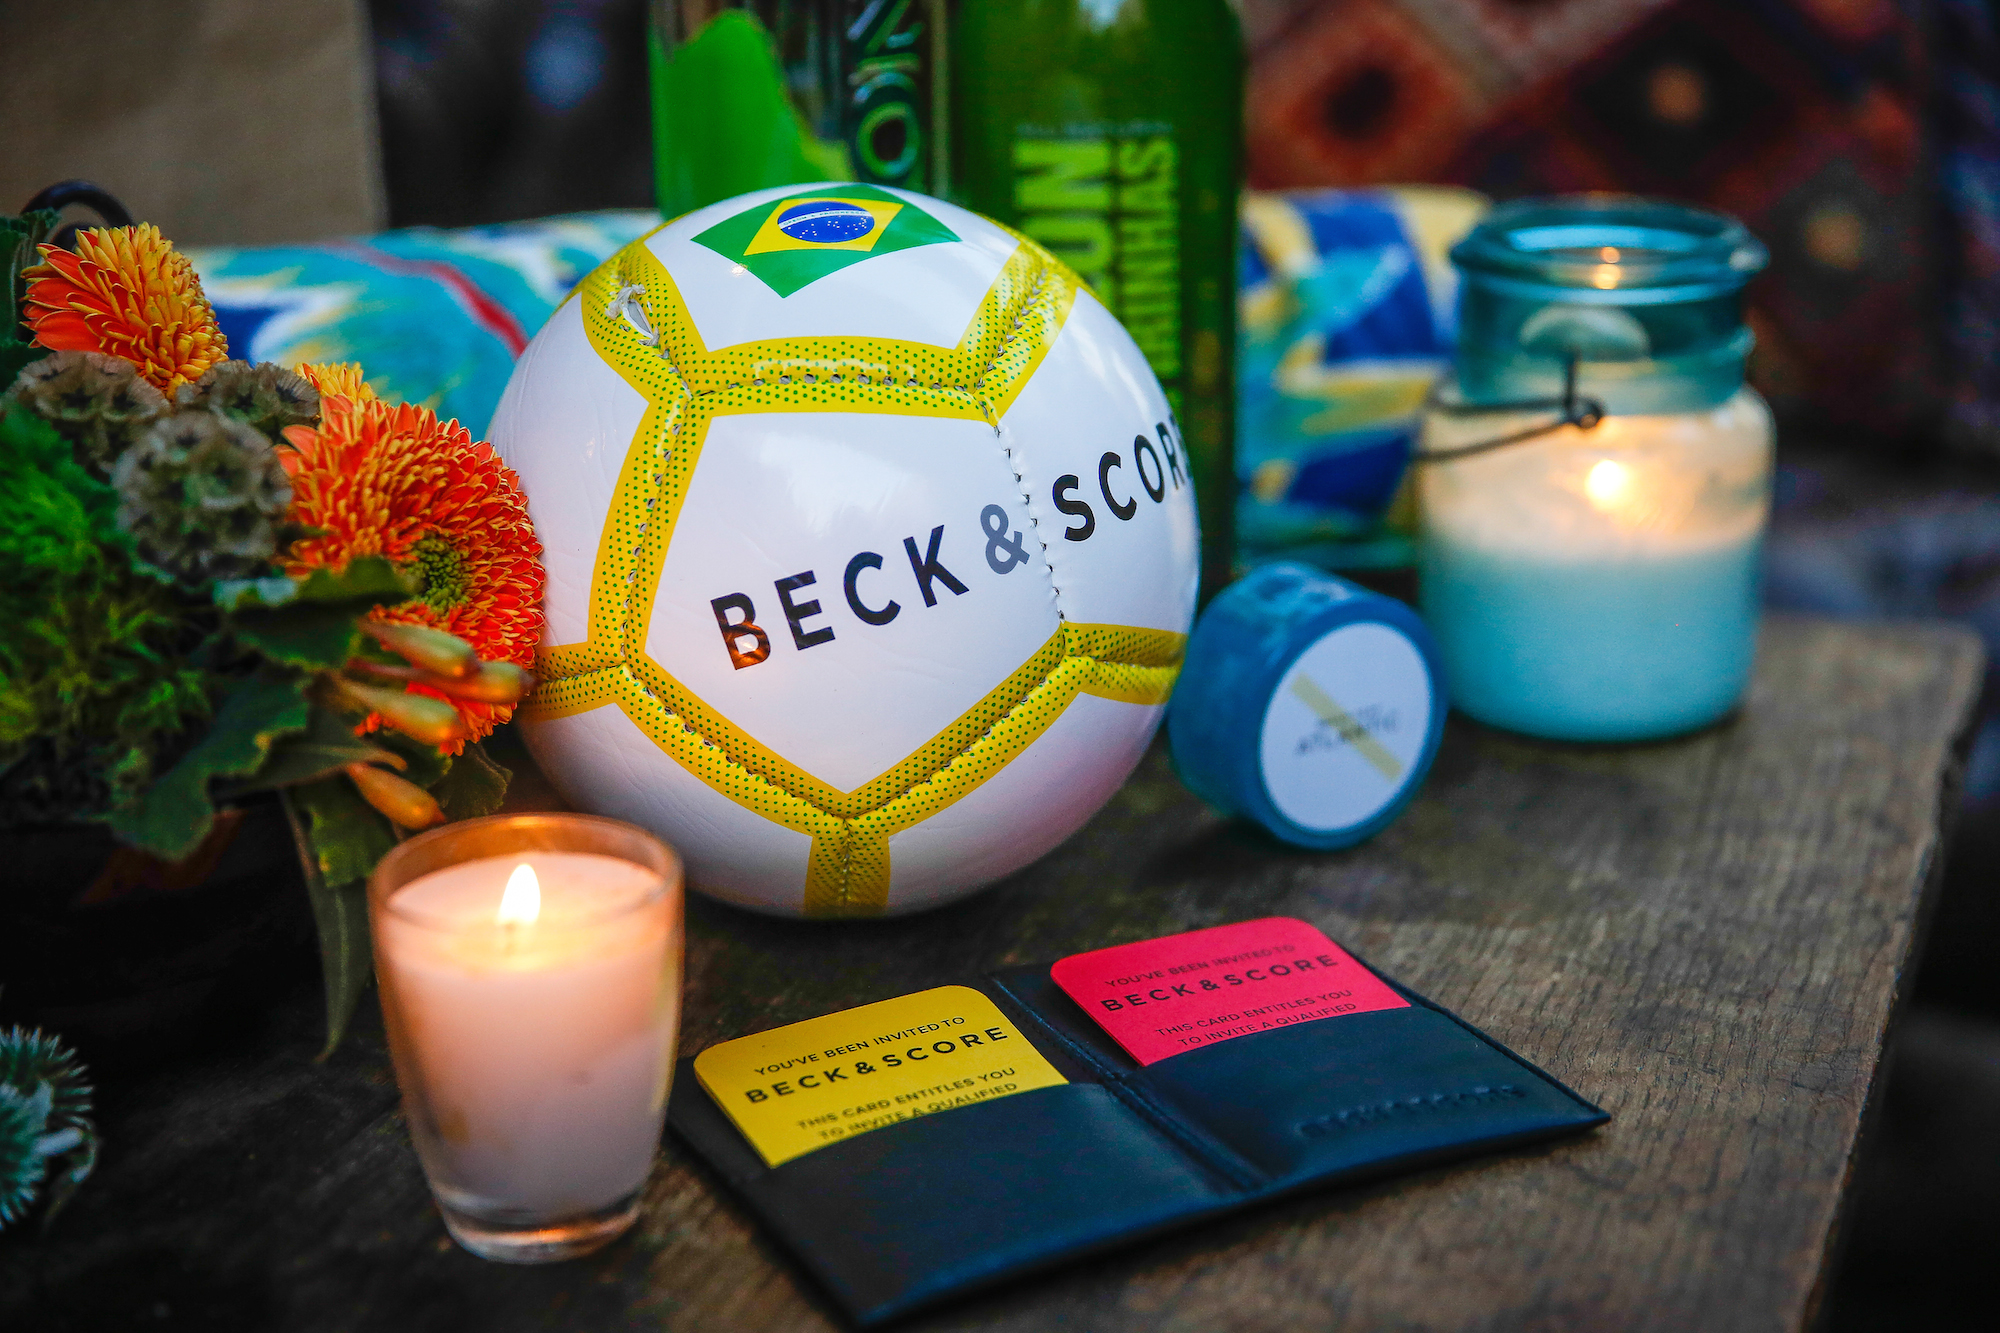 Soccer theme party stationery